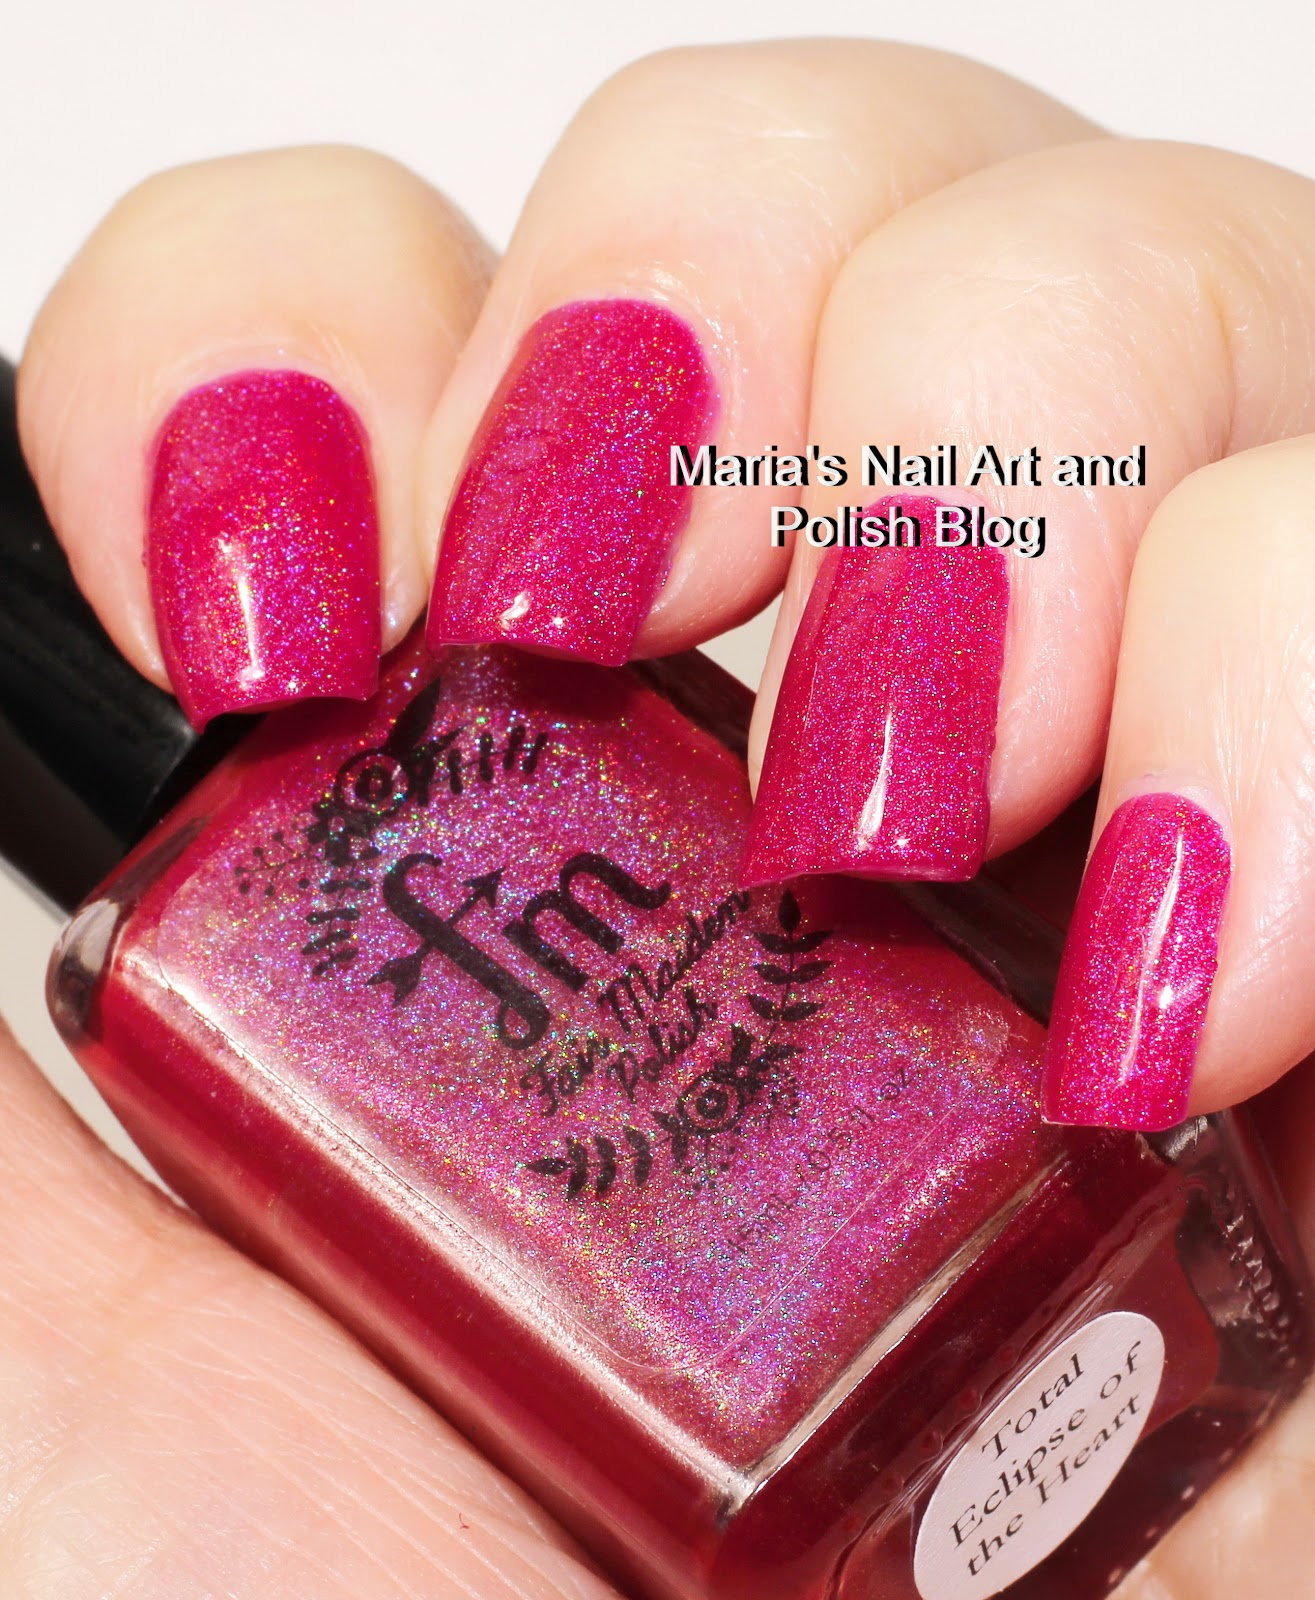 Marias Nail Art and Polish Blog: Fair Maiden Total Eclipse Of The ...